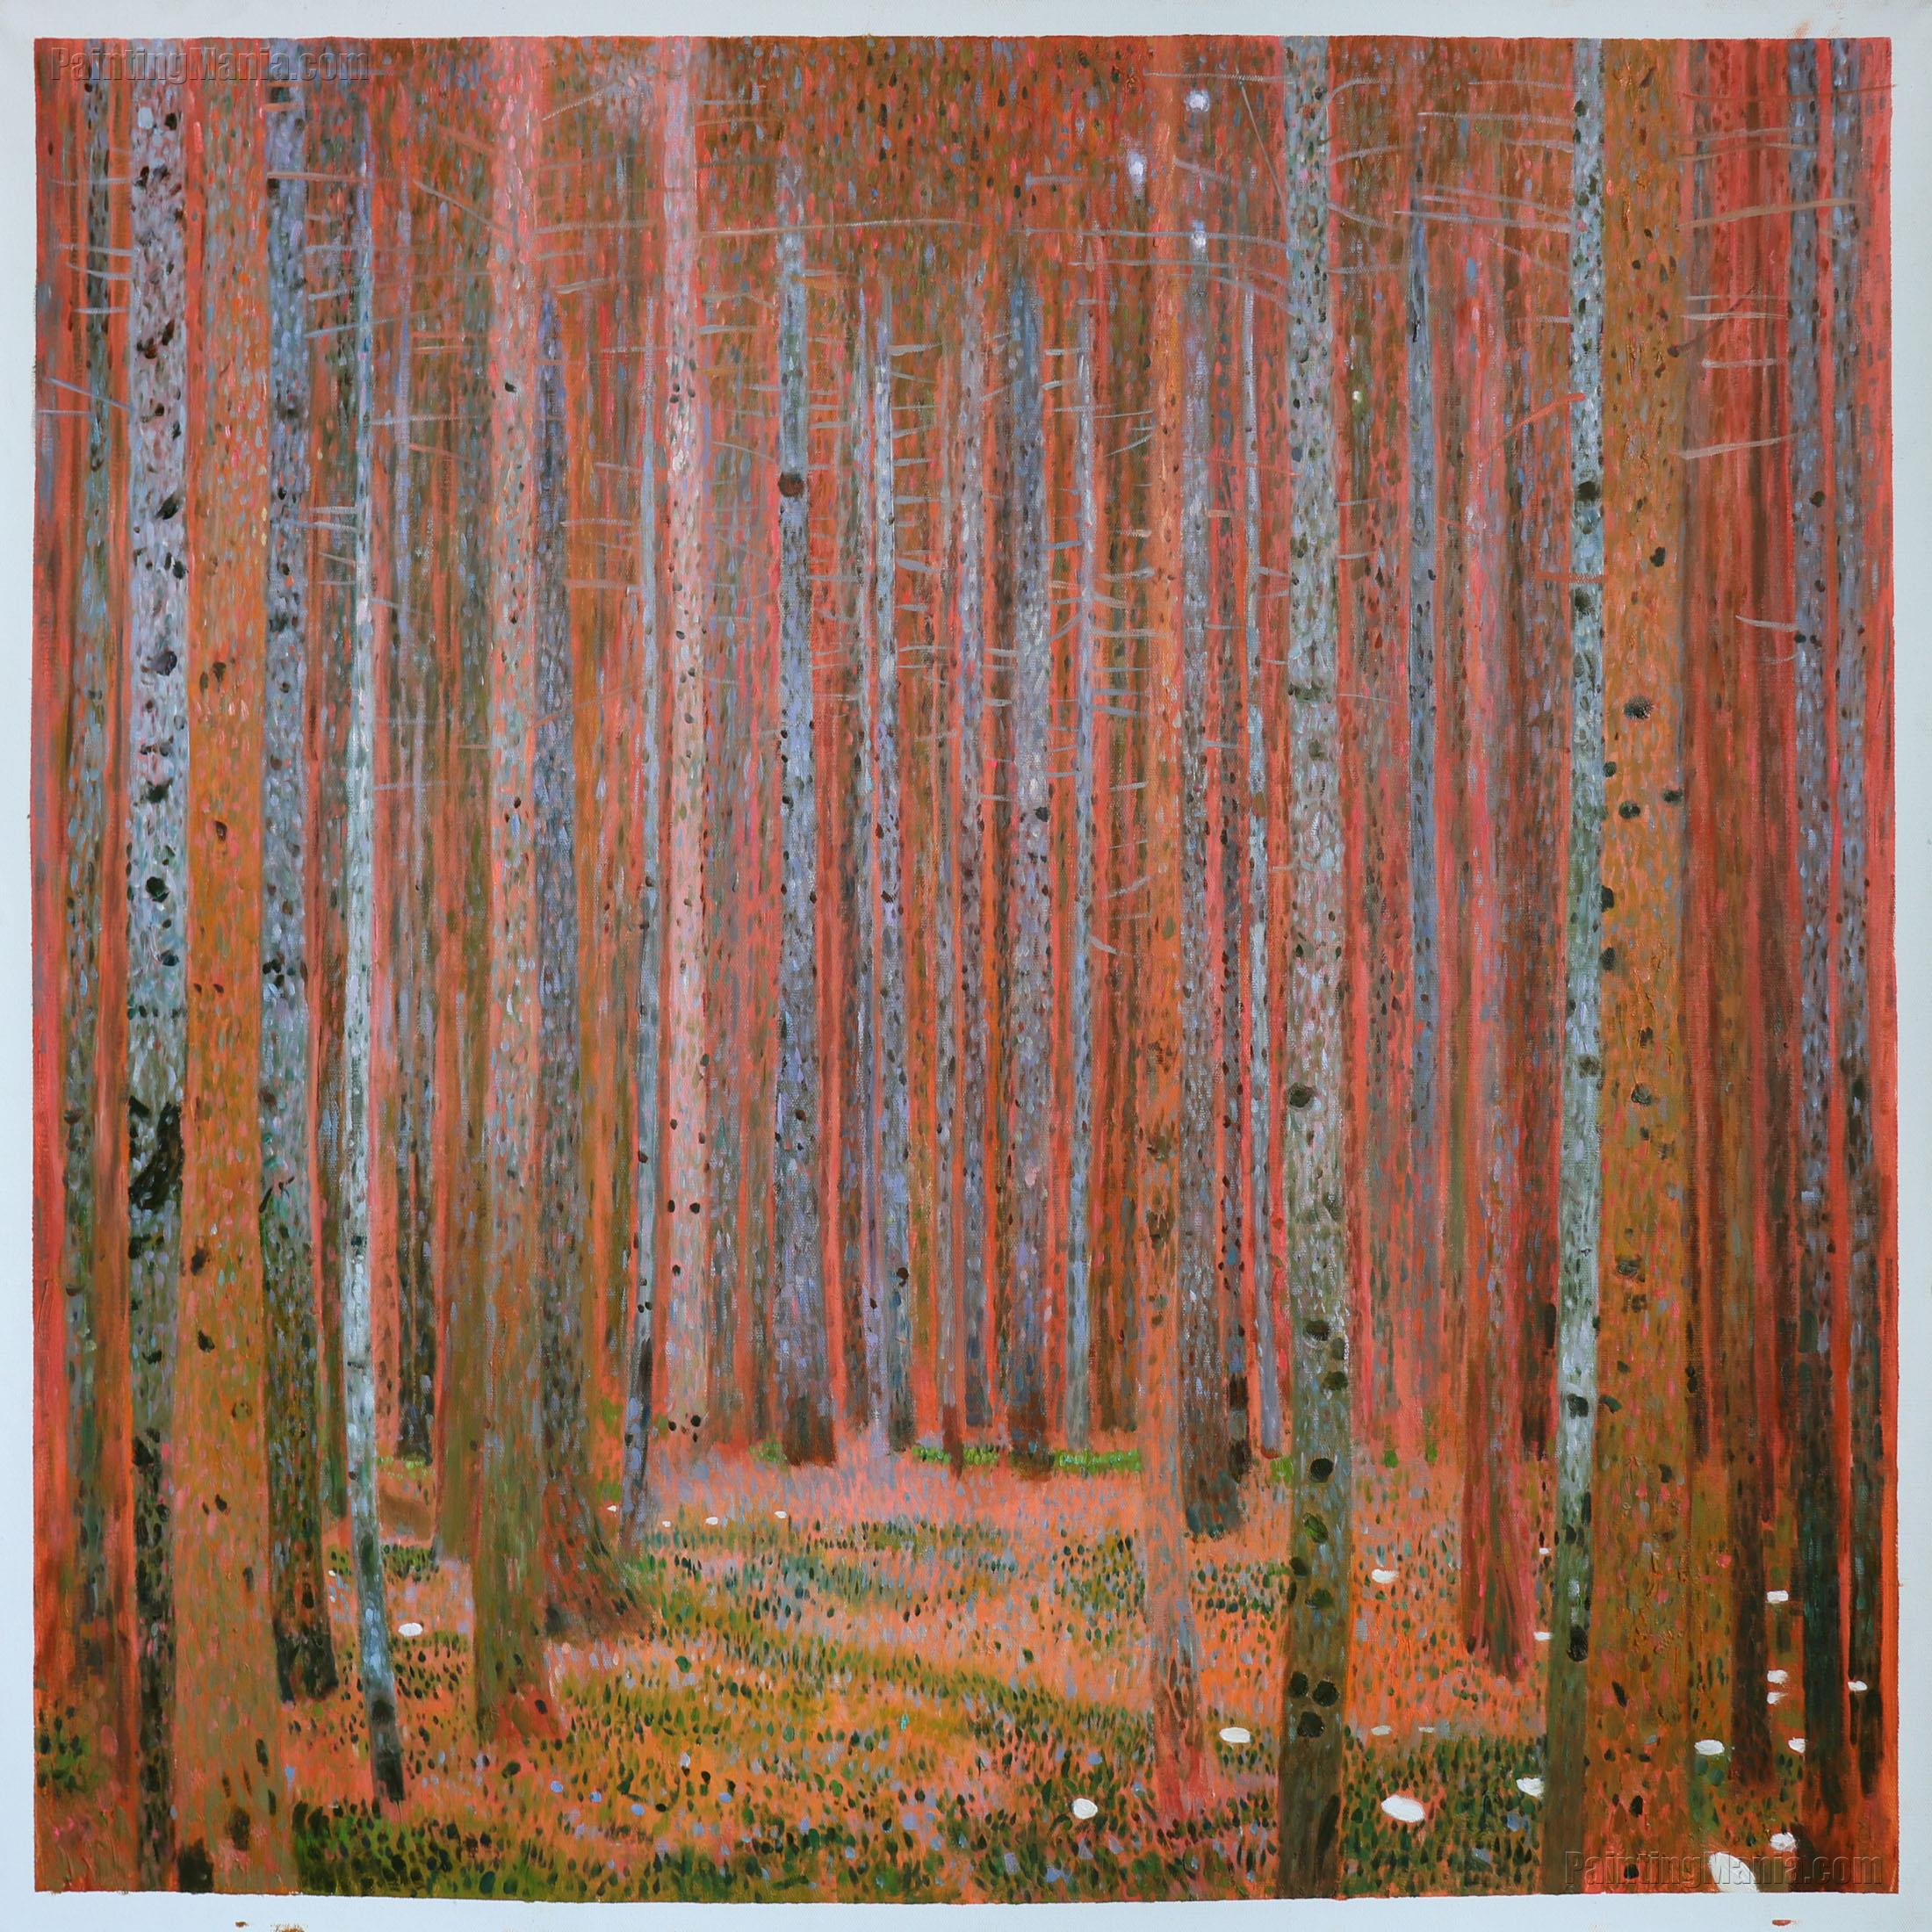 Tannenwald I (Pine Forest I)